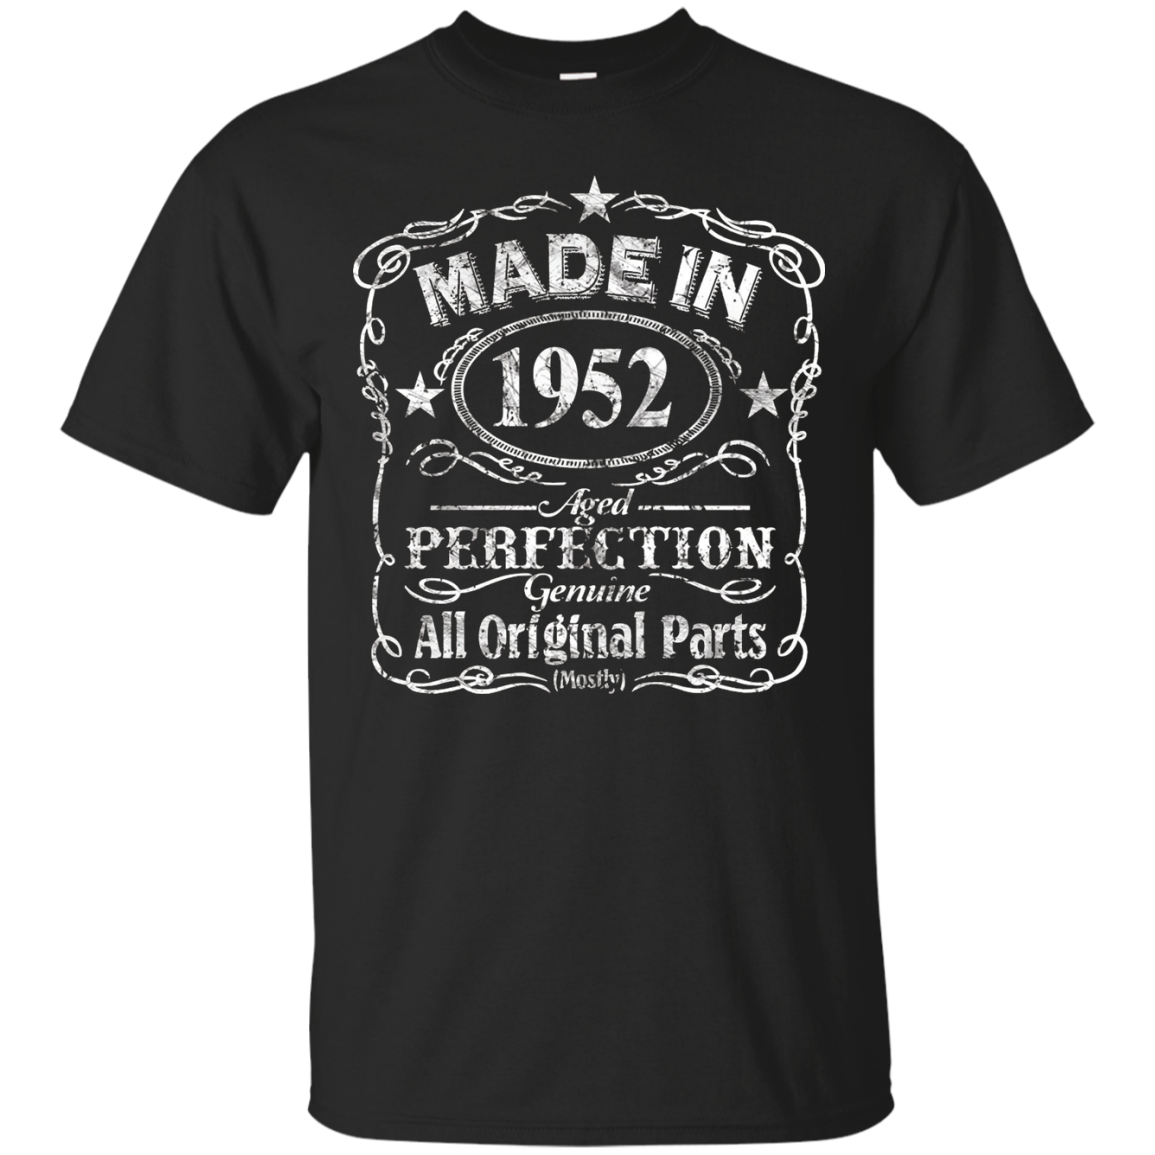 Made In 1952 Aged Perfection Genuine All Original Parts